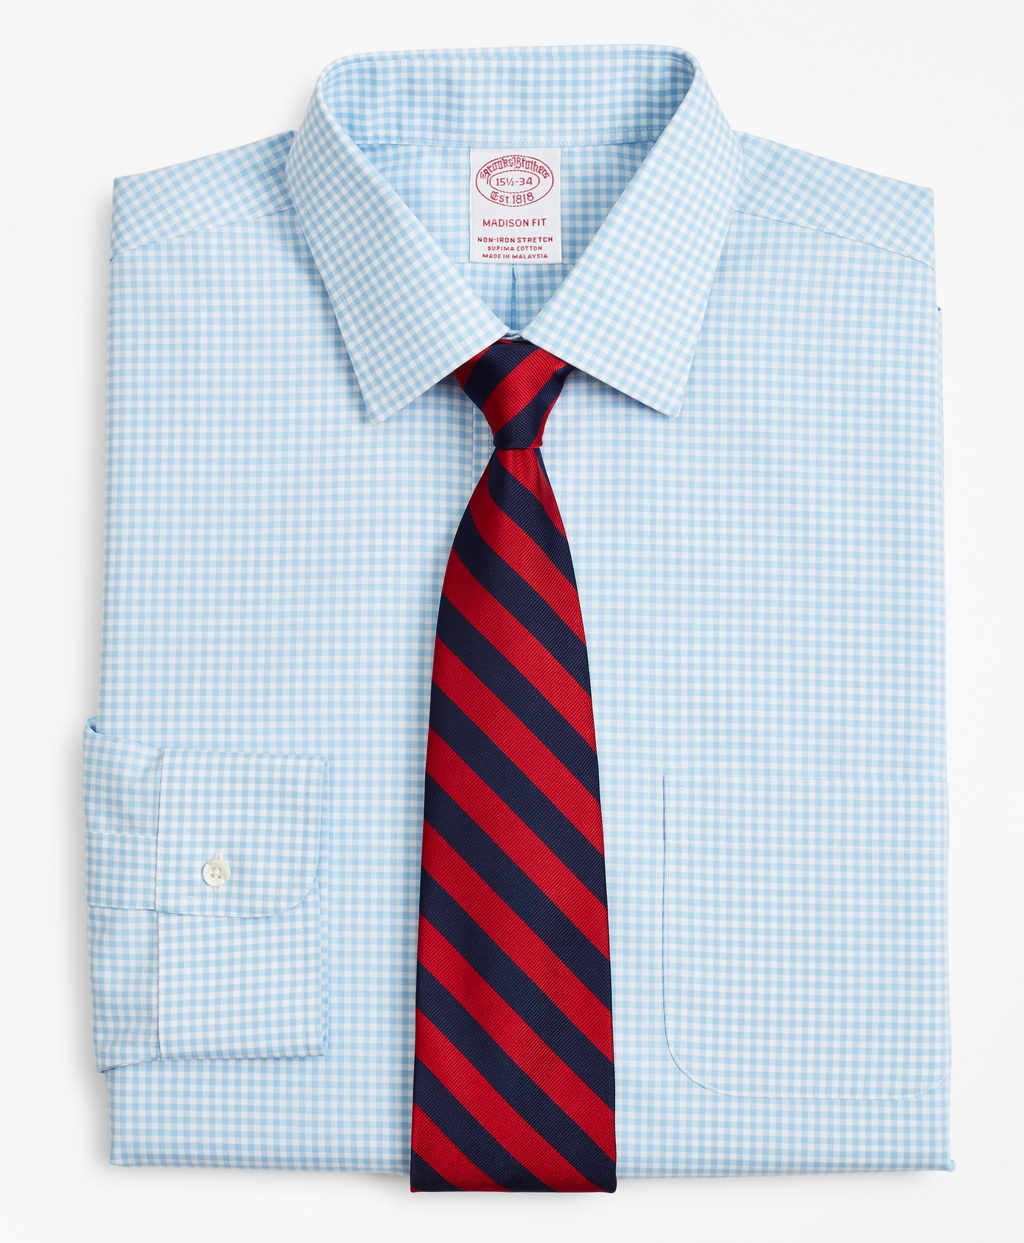 Brooksbrothers Stretch Madison Relaxed-Fit Dress Shirt, Non-Iron Poplin Ainsley Collar Gingham